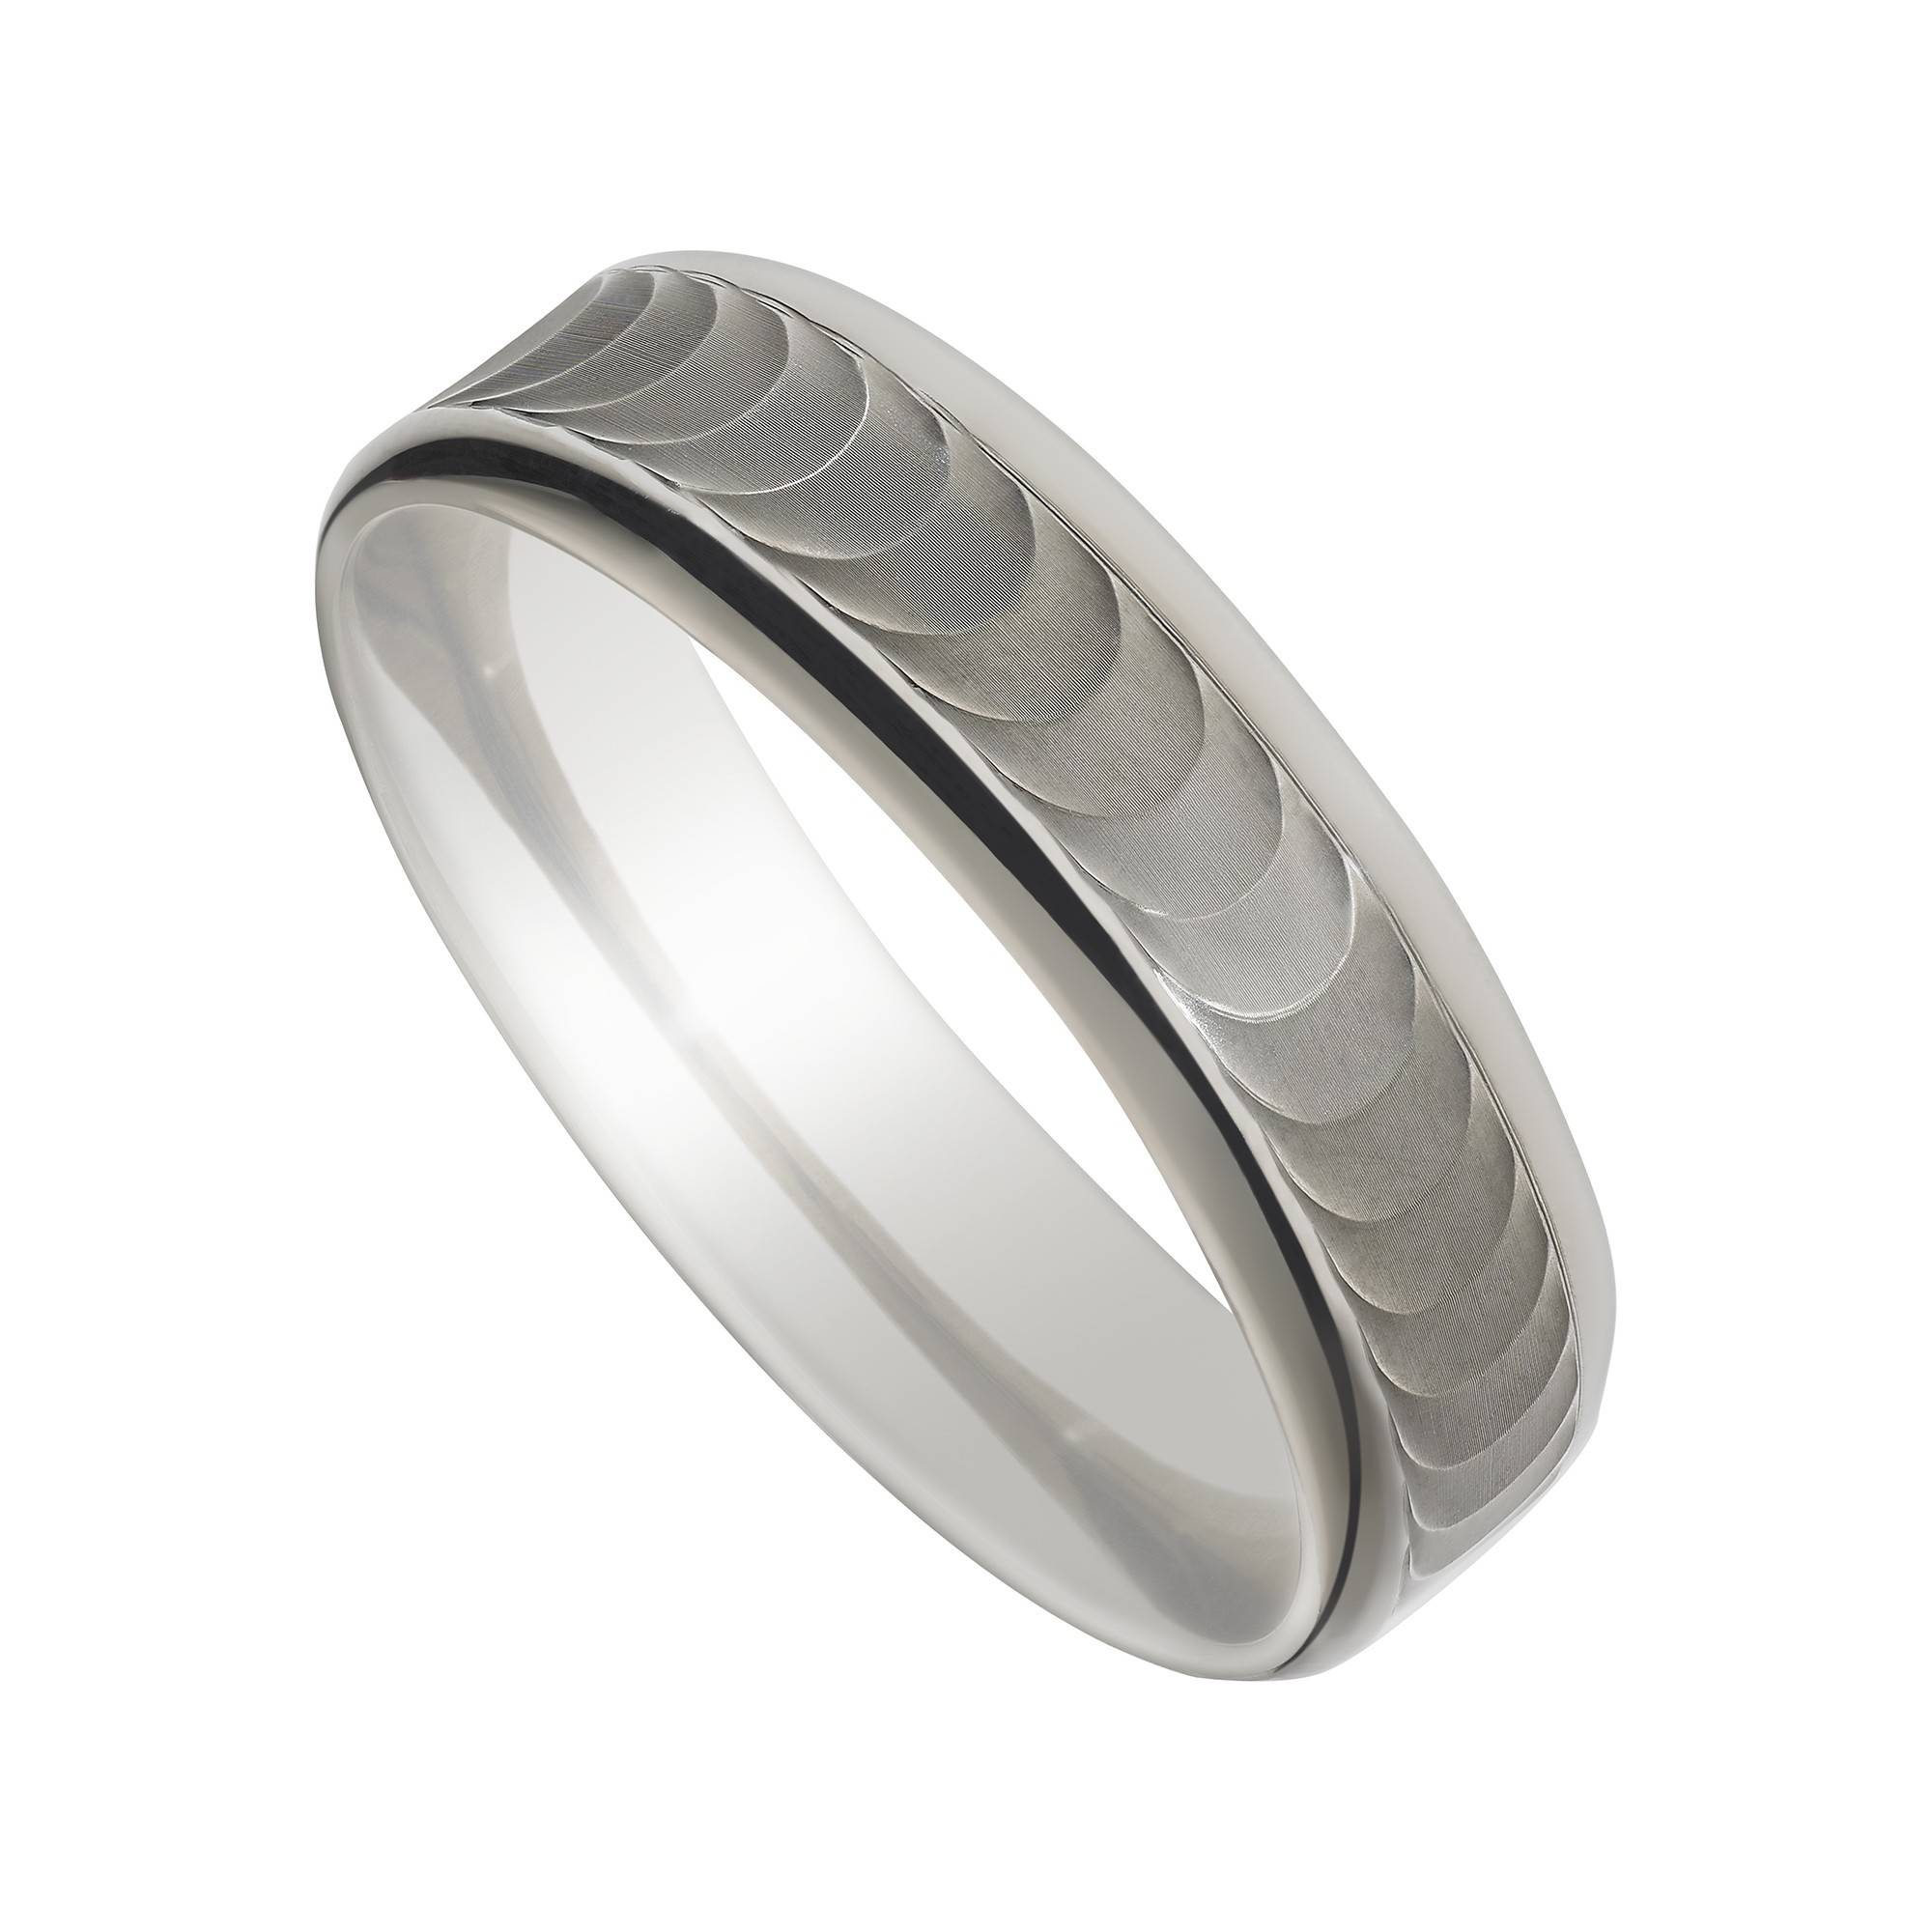 Wedding Rings : Women's Palladium Wedding Bands Palladium Vs Throughout Most Up To Date Palladium Wedding Bands For Women (View 14 of 15)